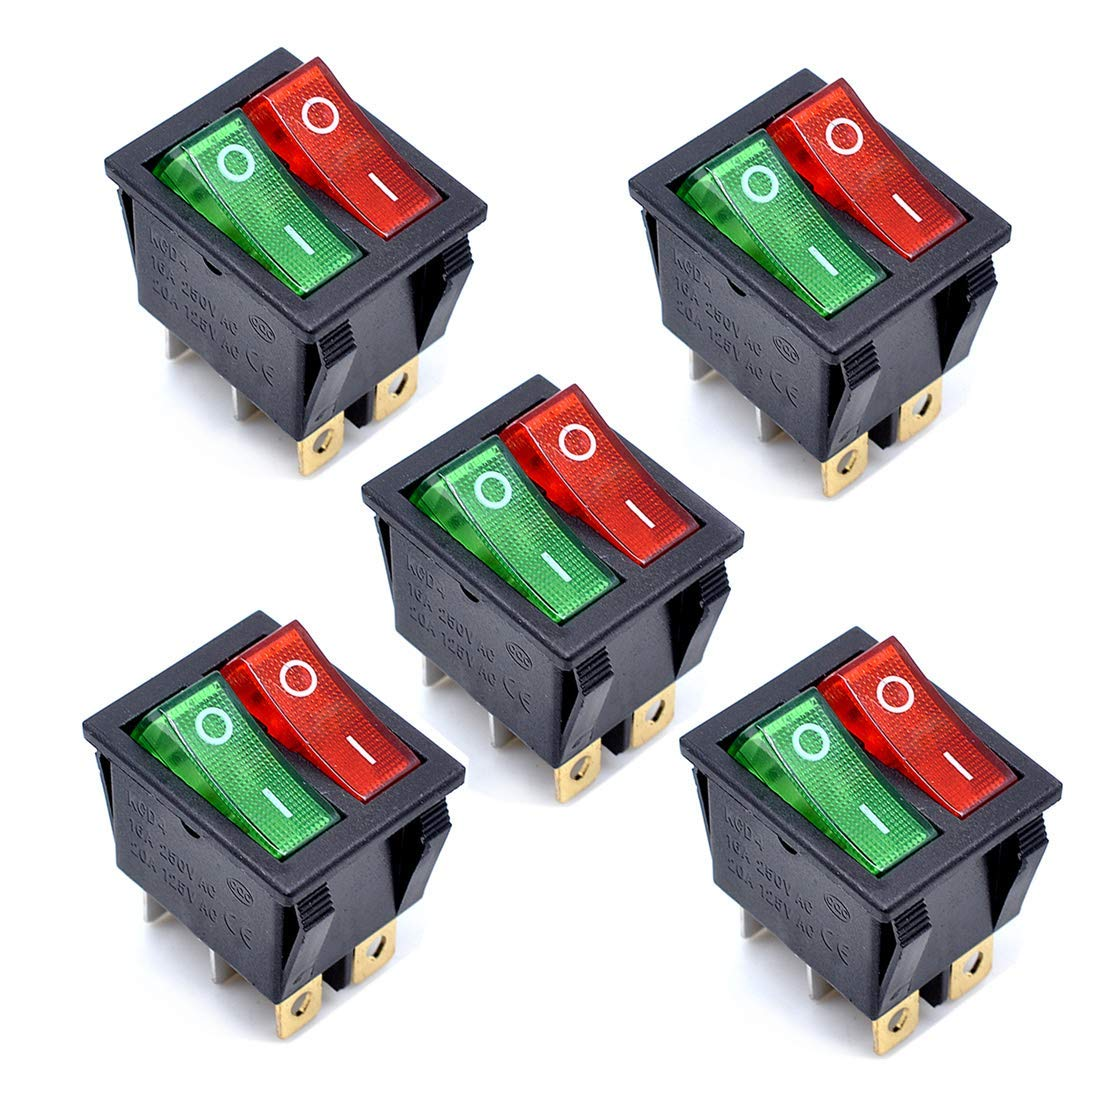 Cheap 16a 250v Rocker Switch Find Deals On Red Dpdt Double Pole Throw With Light Get Quotations Willwin 5pcs Kcd4 Ac Green 6p Terminals Off Spst